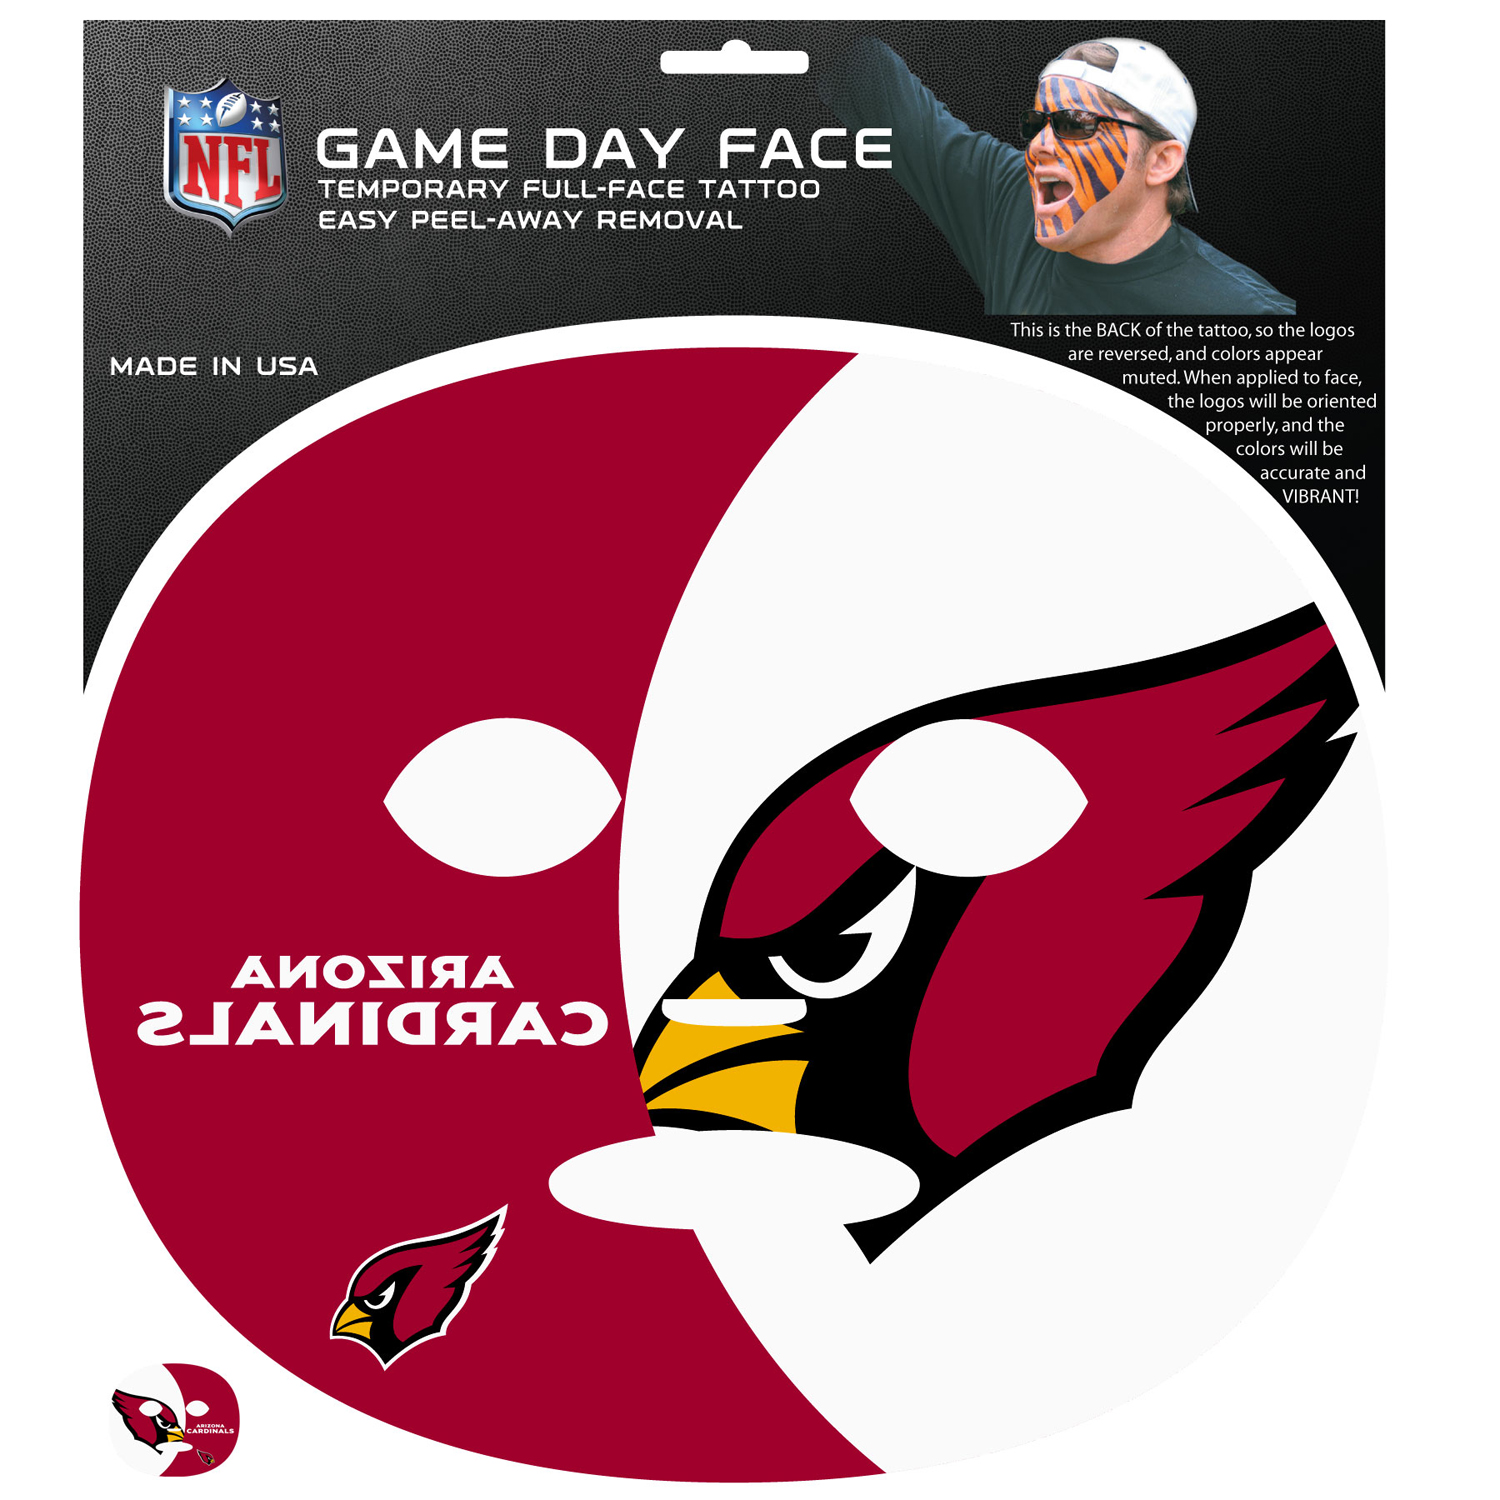 Arizona Cardinals Set of 4 Game Day Faces - No better way to show your team pride than by painting your face. Siskiyou's Game Day Face Temporary Tattoo isn't your typical face paint. It is a water based application that doesn't smudge, smear or sweat off while you're wearing it and easily peels off after you're done celebrating your team's big Win! The temporary tattoo is large enough to trim down to fit your face. Our Game Day Face Temporary Tattoo's are fun for fans of all ages. You may have seen our product before, these are the same Temporary Face Tattoos as pitched on ABC's Shark Tank.